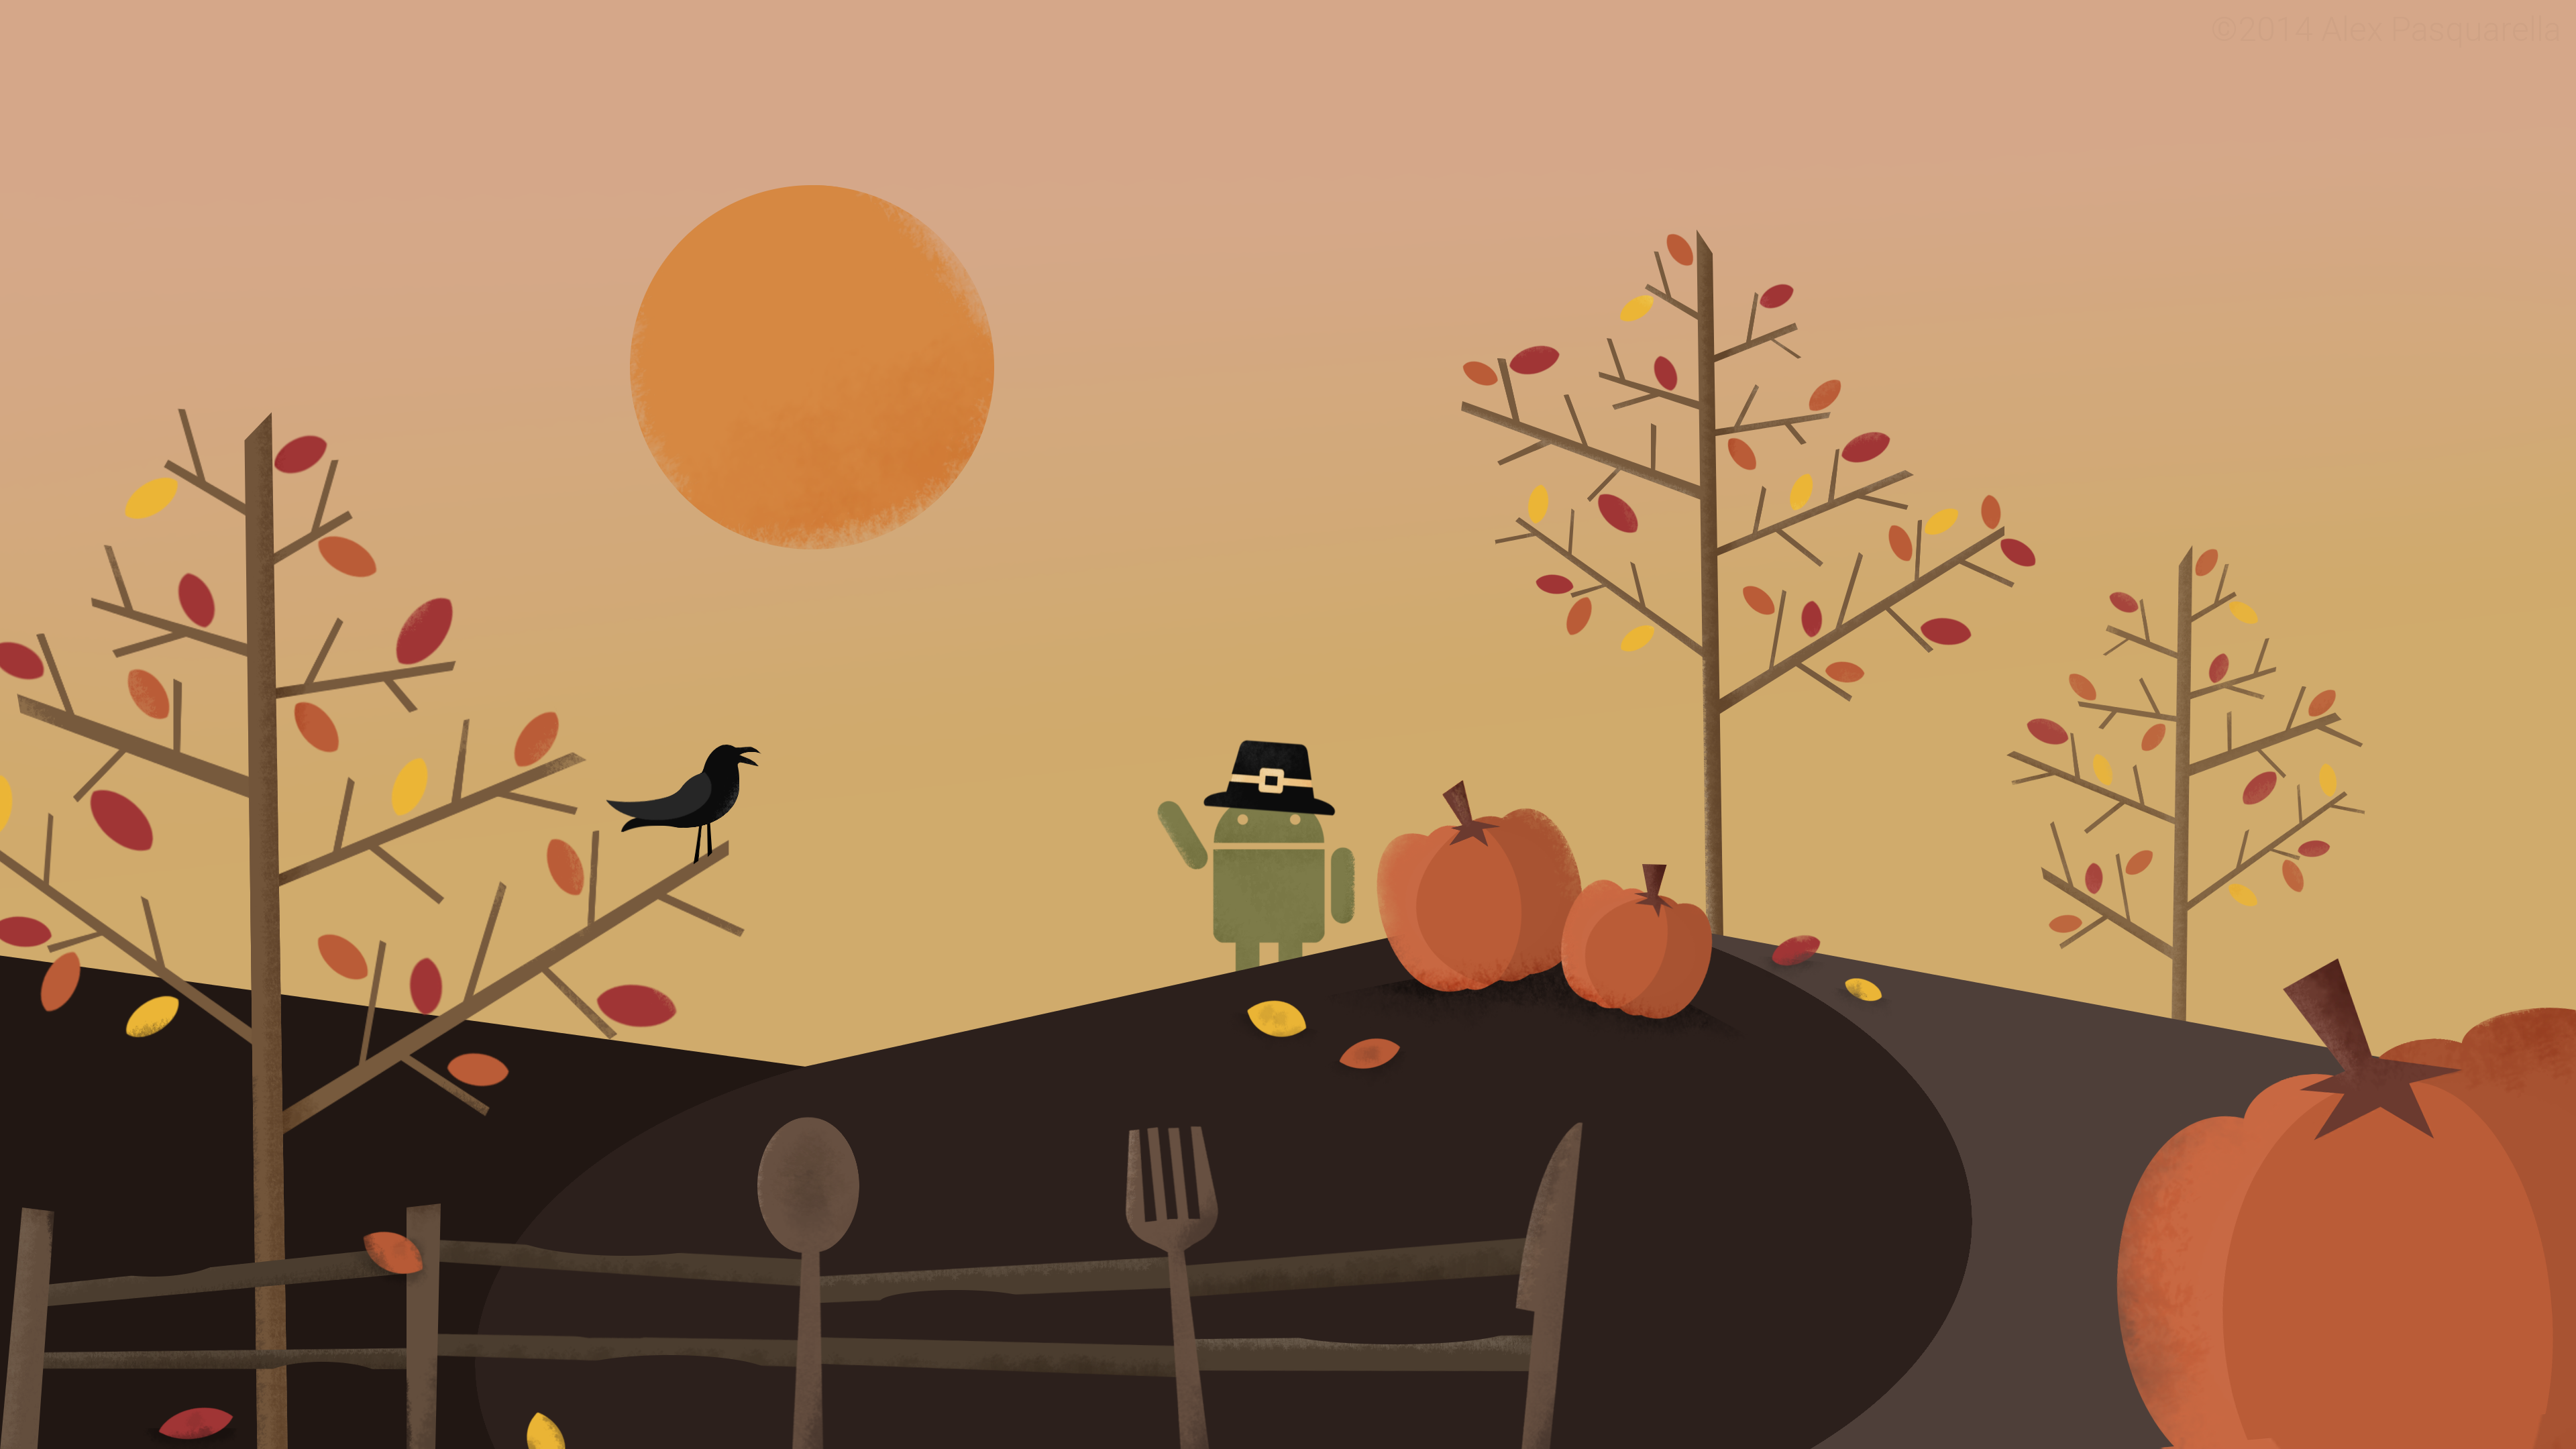 thanksgiving wallpaper widescreen hd pic wpd00555